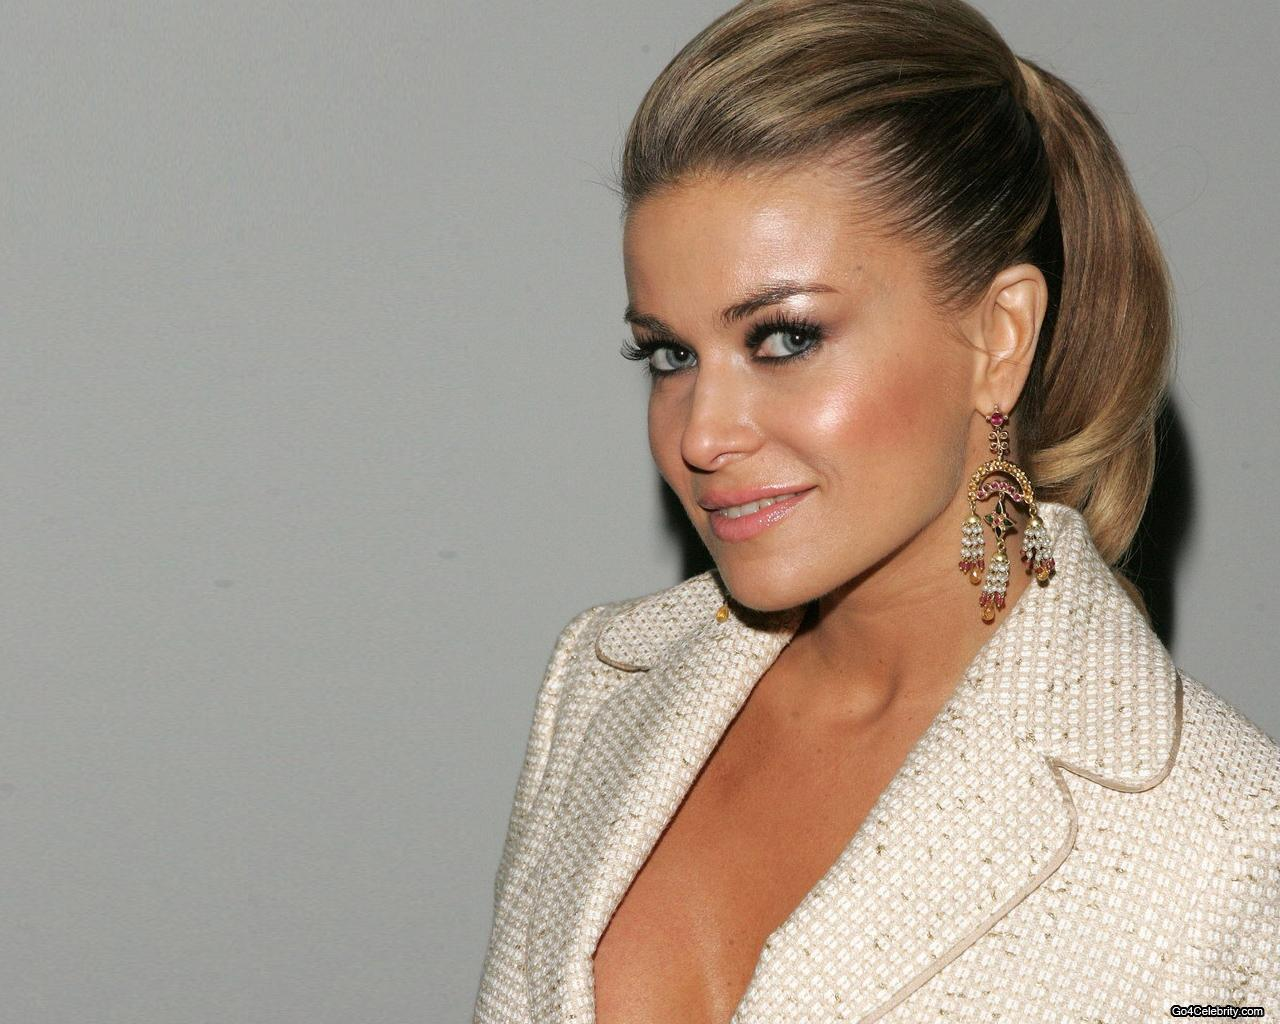 Carmen Electra Hot Pics Ever Seen Before